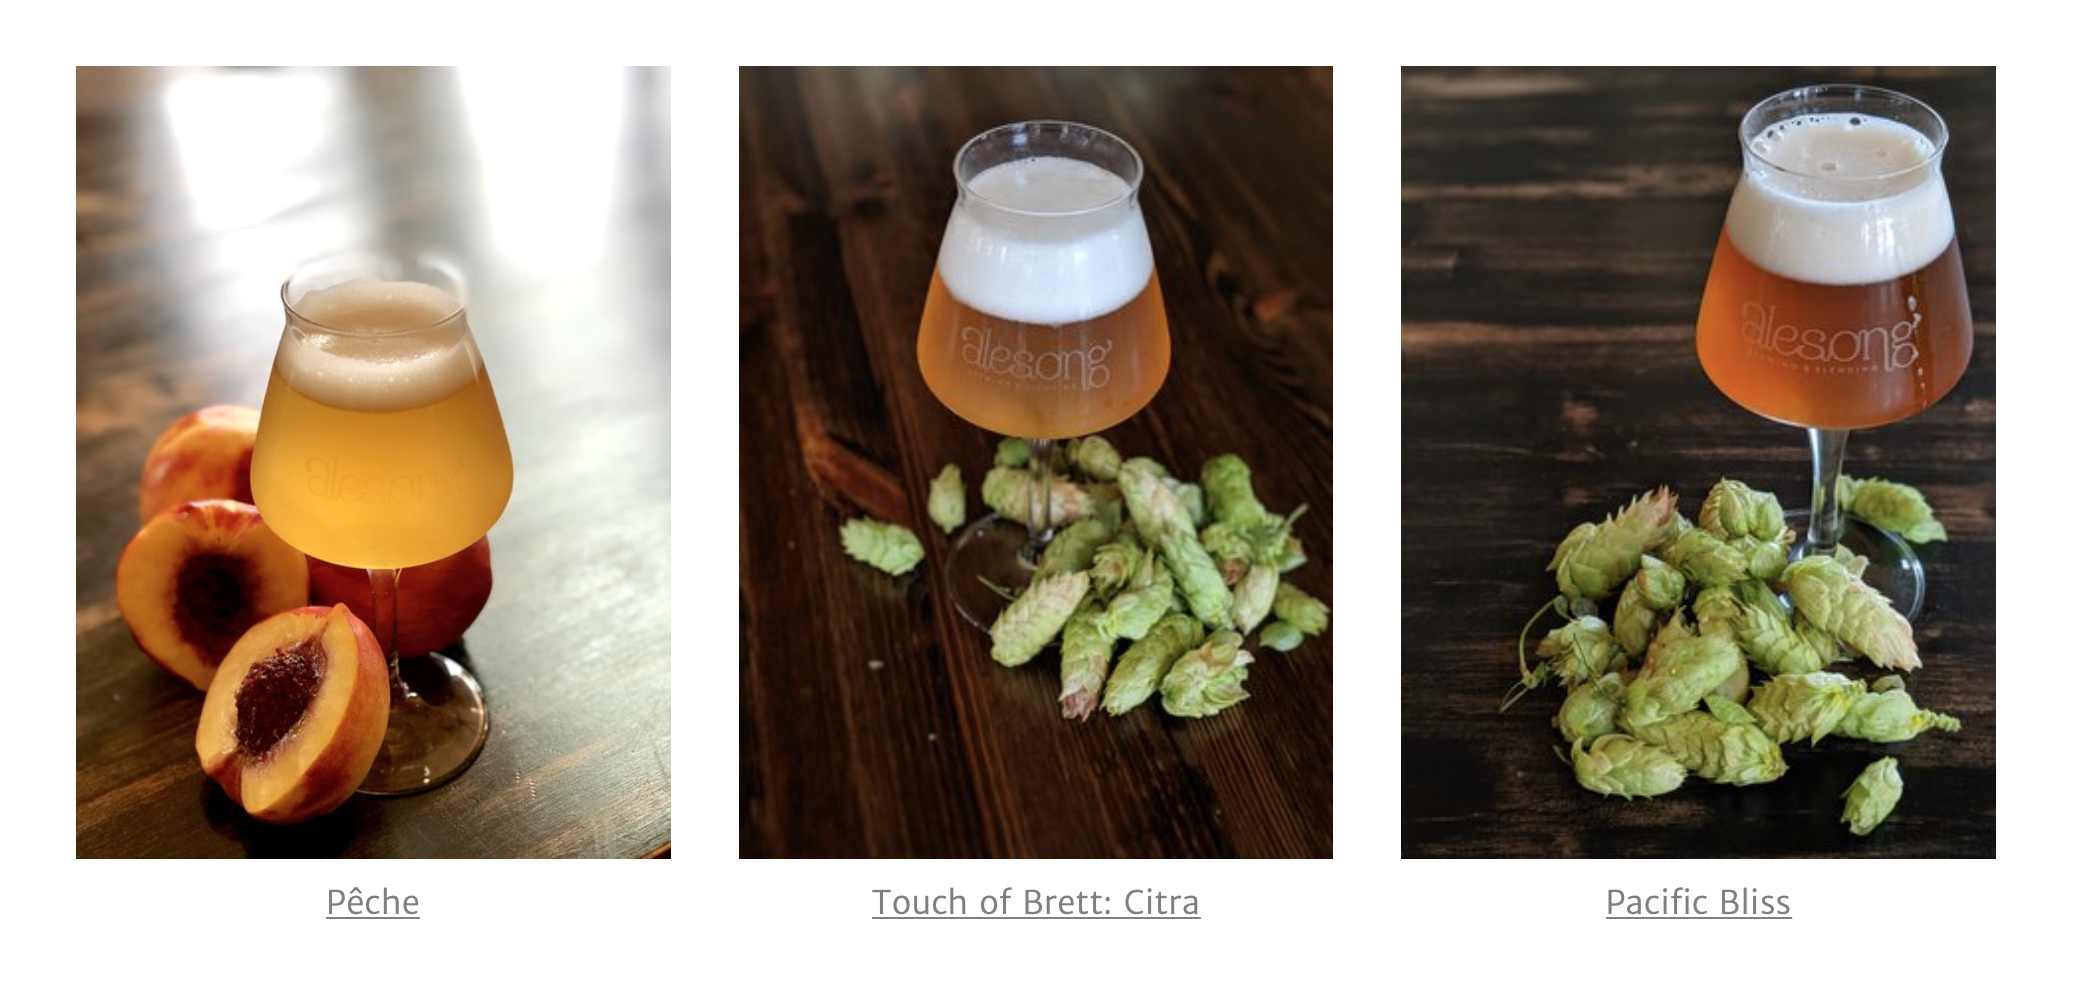 image of Pêche, Touch Of Brett: Citra, and Pacific Bliss (Club Only Release) courtesy of Alesong Brewing & Blending